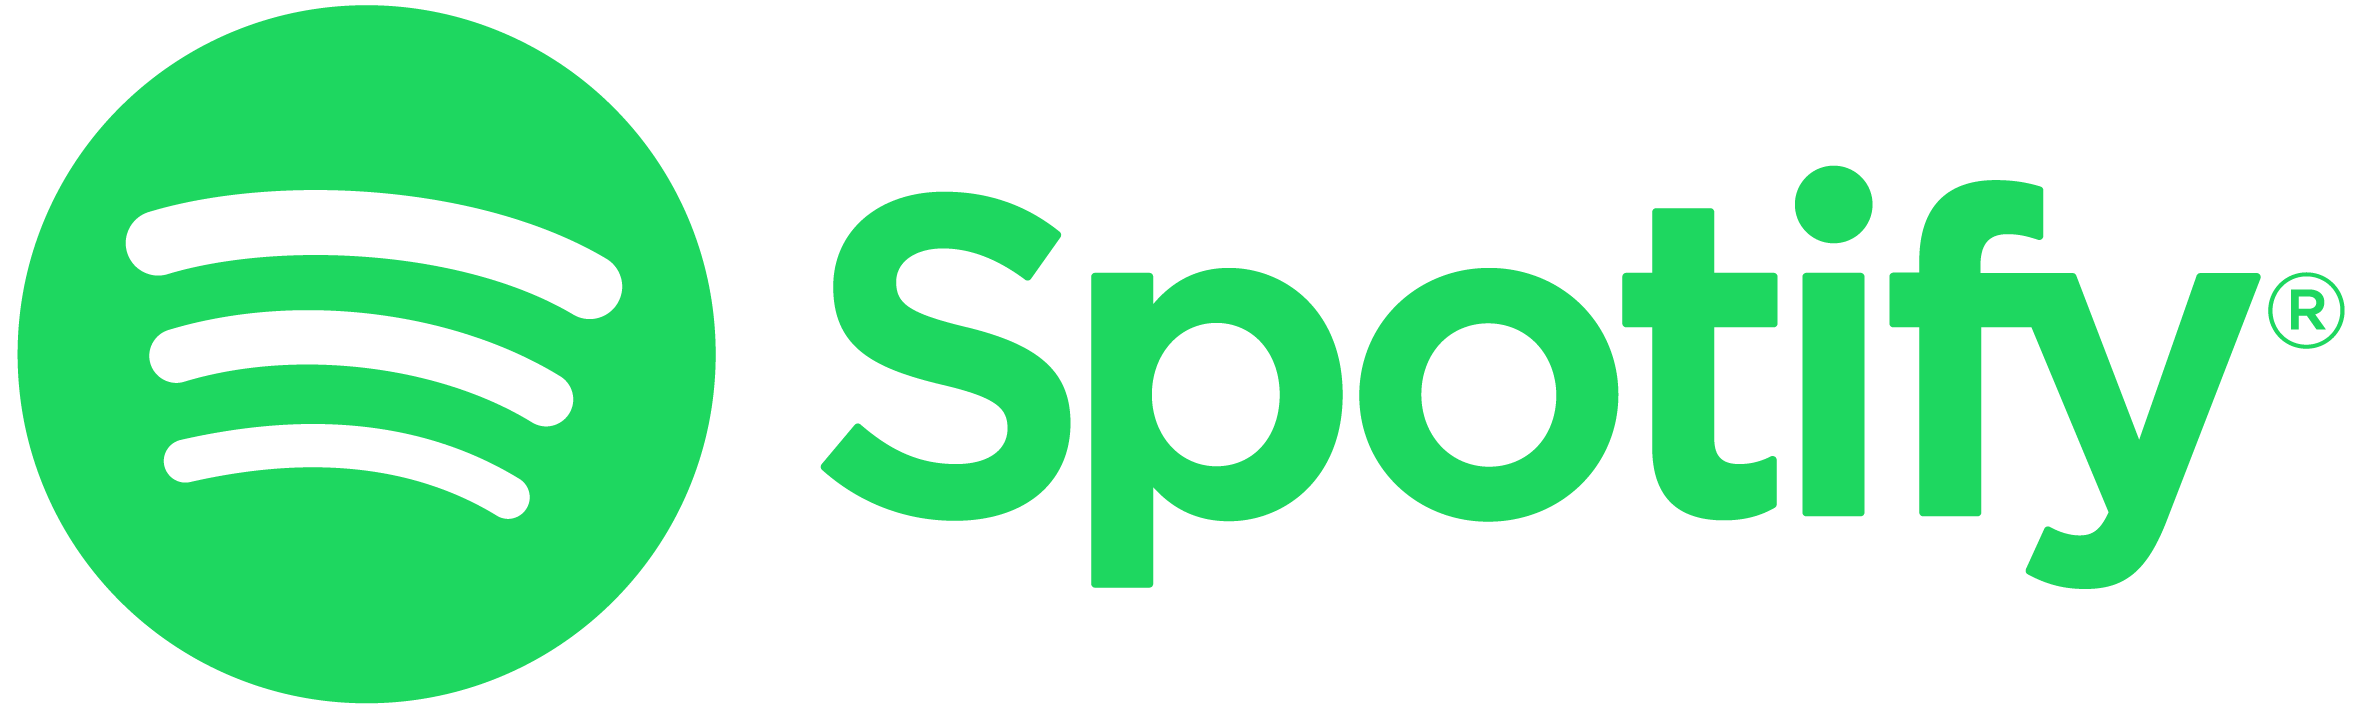 Spotify Logo And Brand Assets